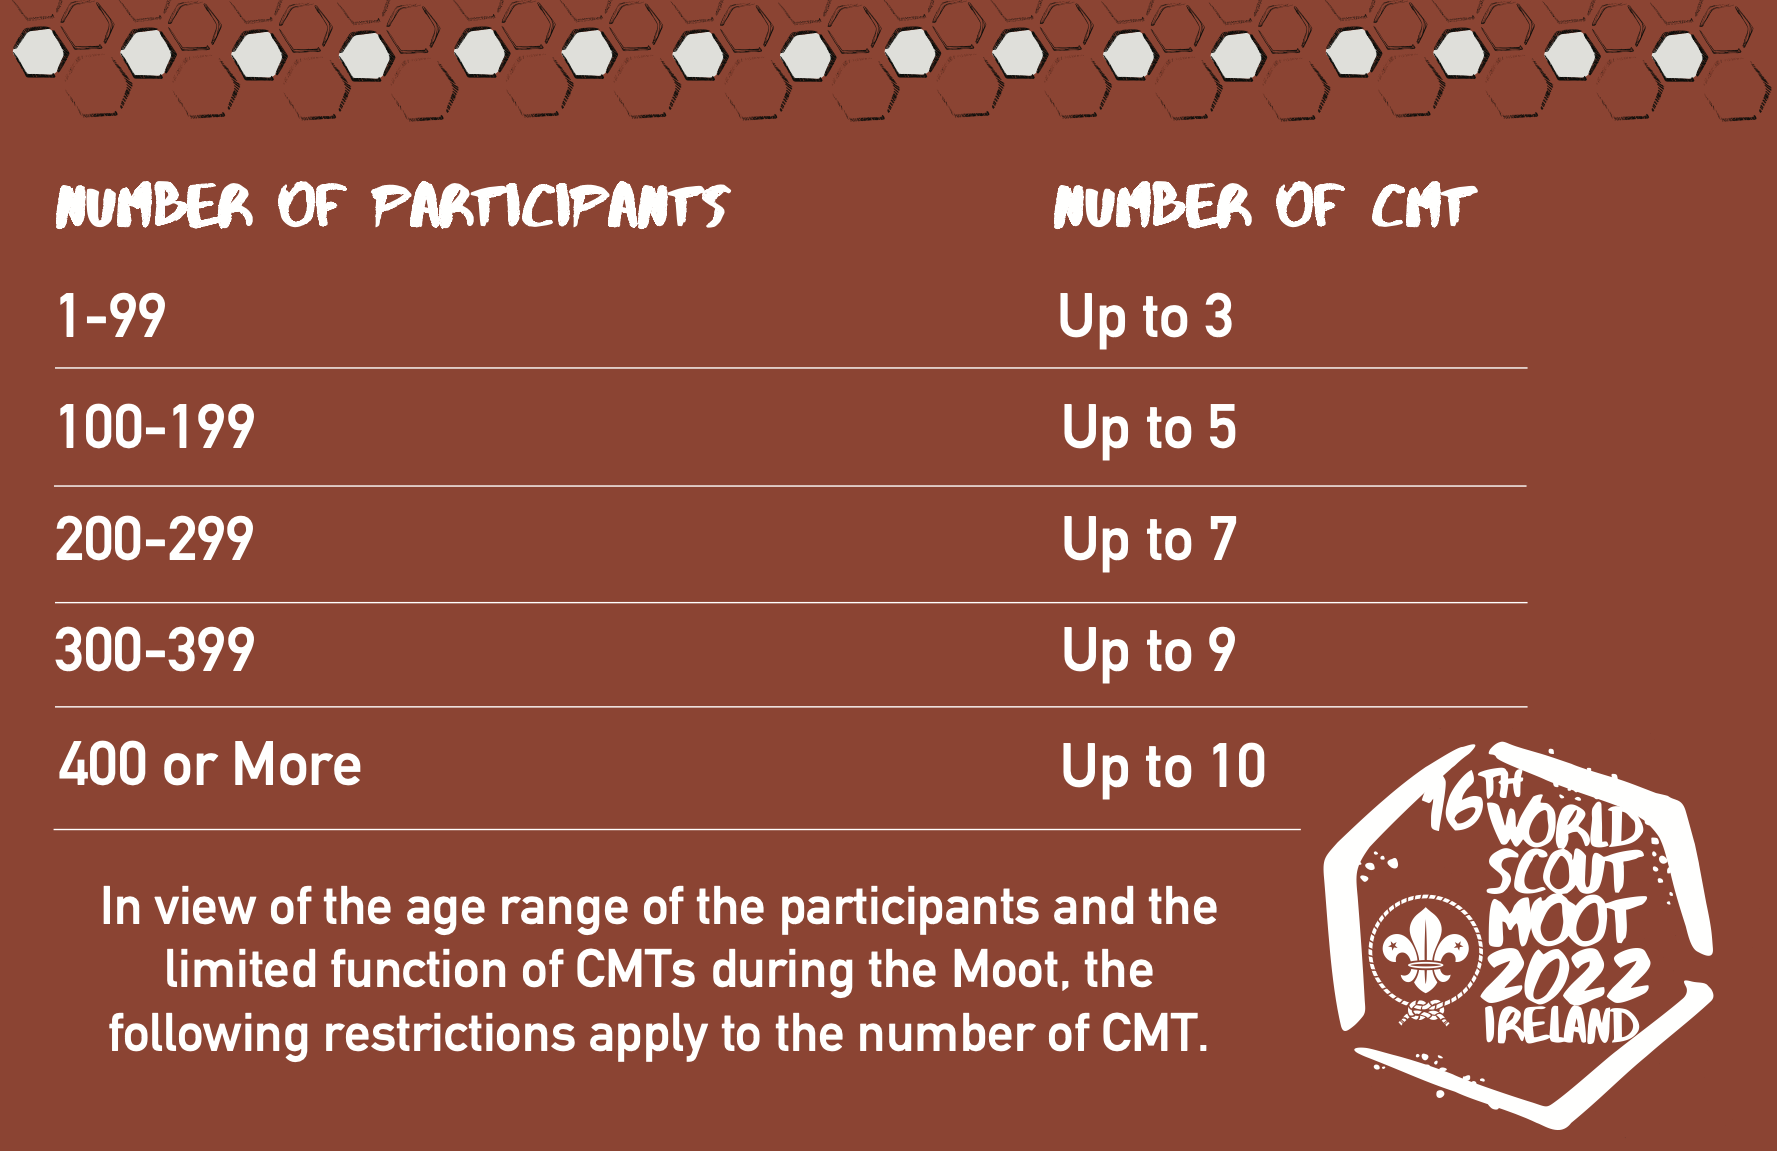 Chart describing the number of CMT members allowed given the number of participants in a contingent